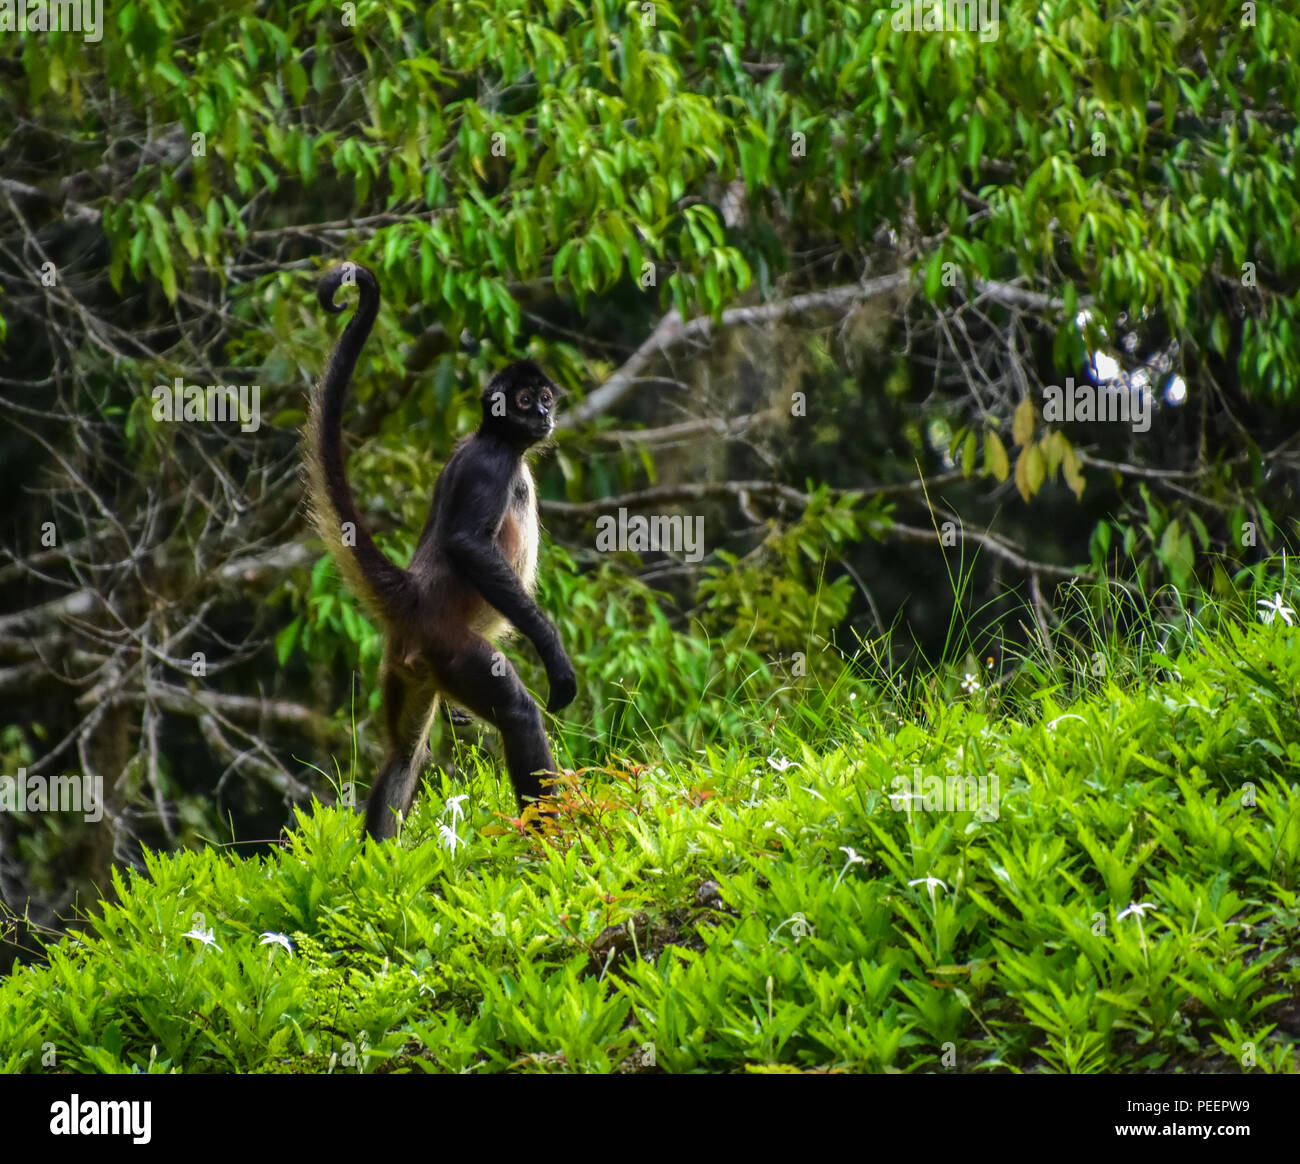 Spider Monkey at Tikal National Park, Guatemala - Stock Image